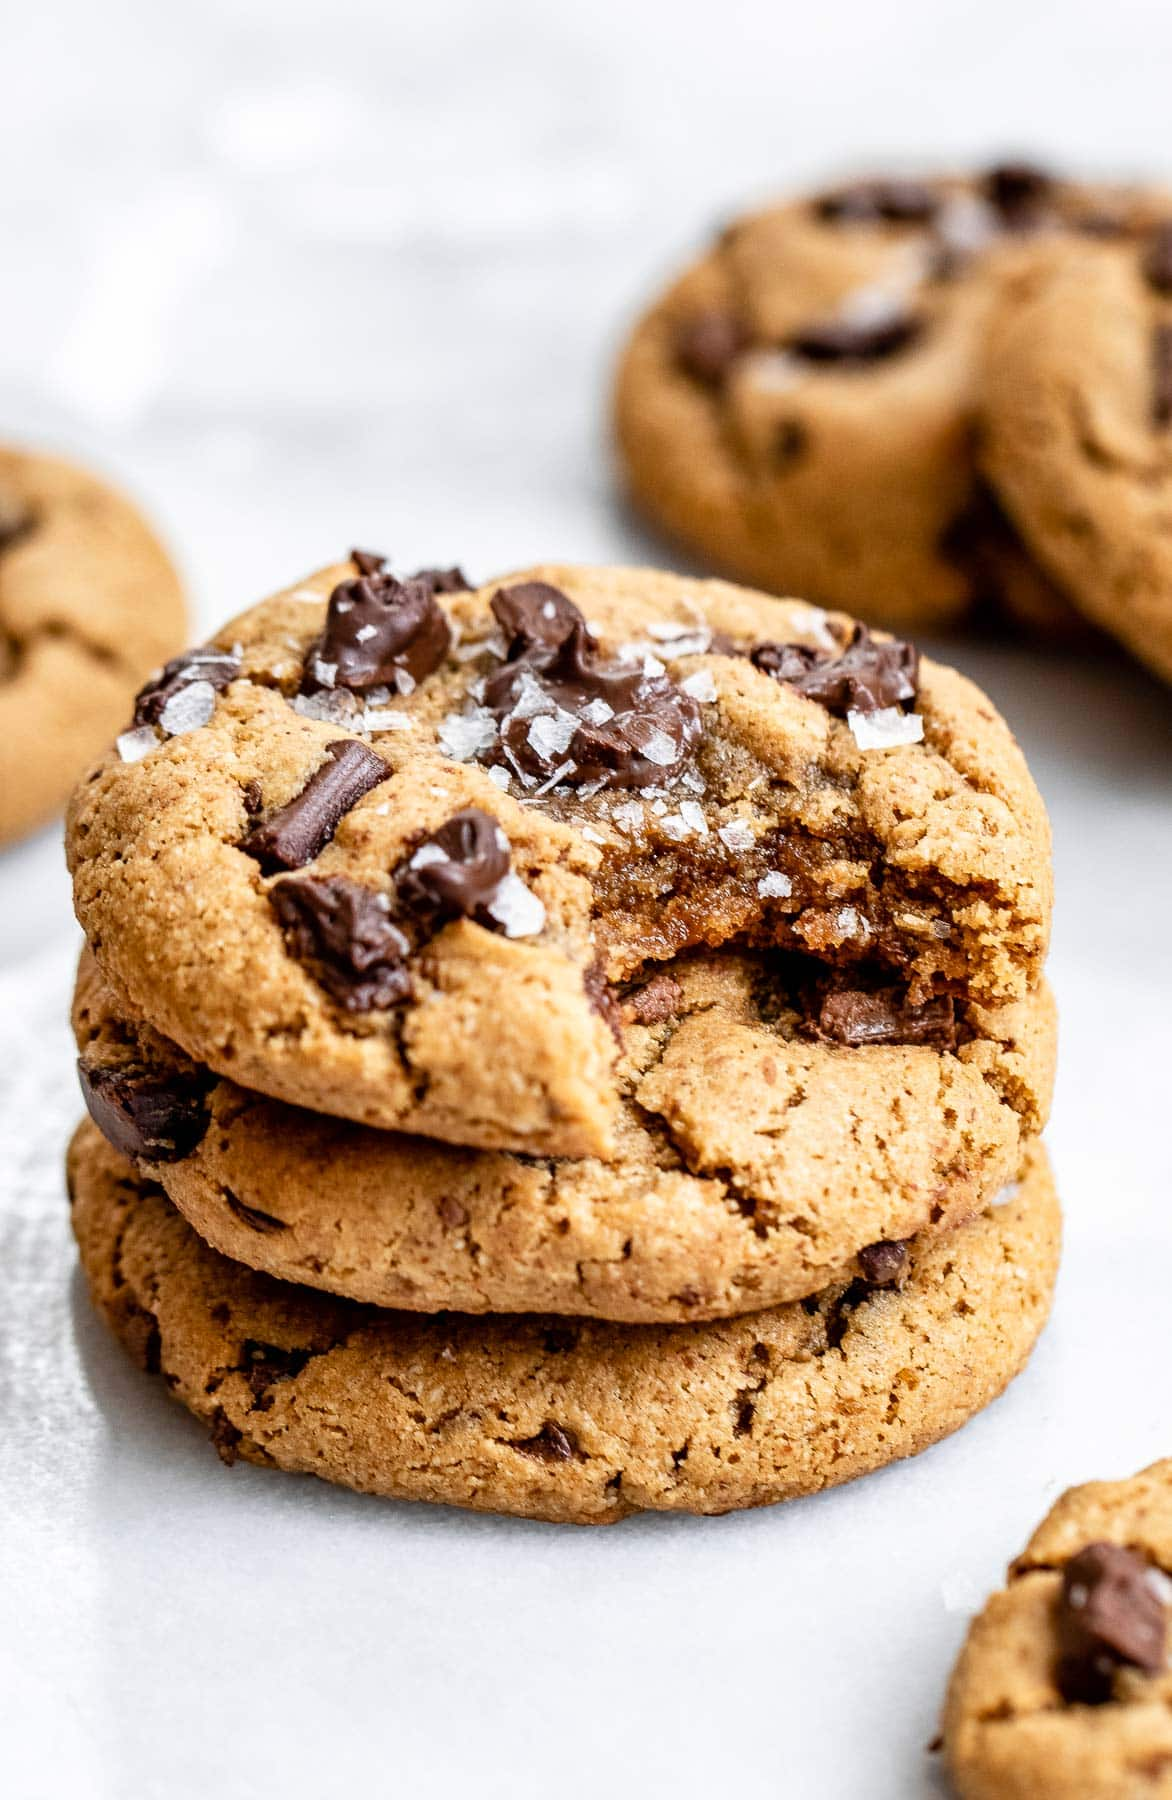 Three chocolate chunk cookies stacked on top of each other.